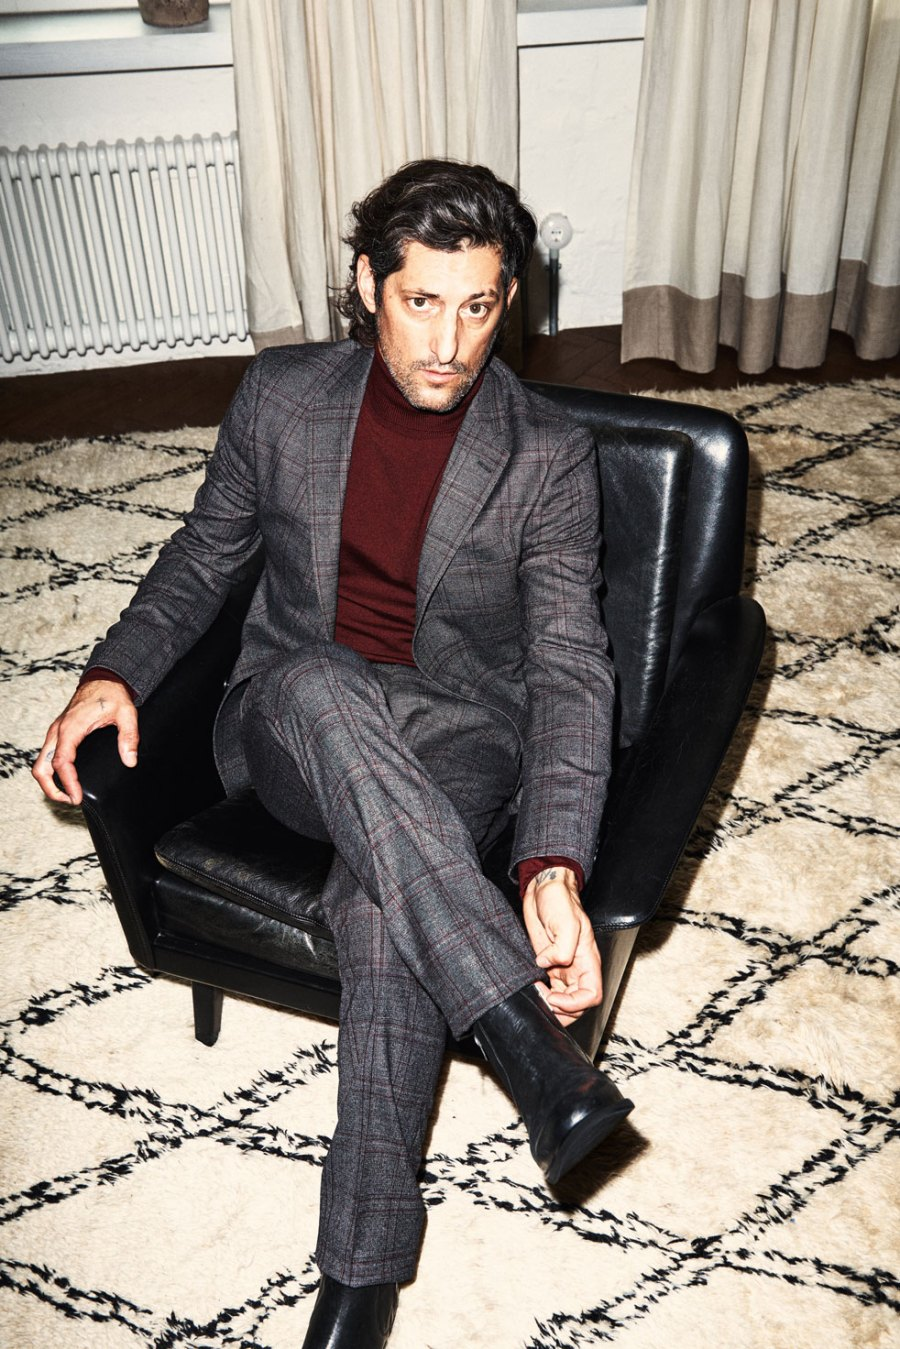 Tony Ward reunites with German retailer Wormland for the latest AW16 campaign. Tony, pictured by Felix Krüeger delivers a confident attitude whilst wearing a mix of tailored suits, outerwear, denim and leather pieces.